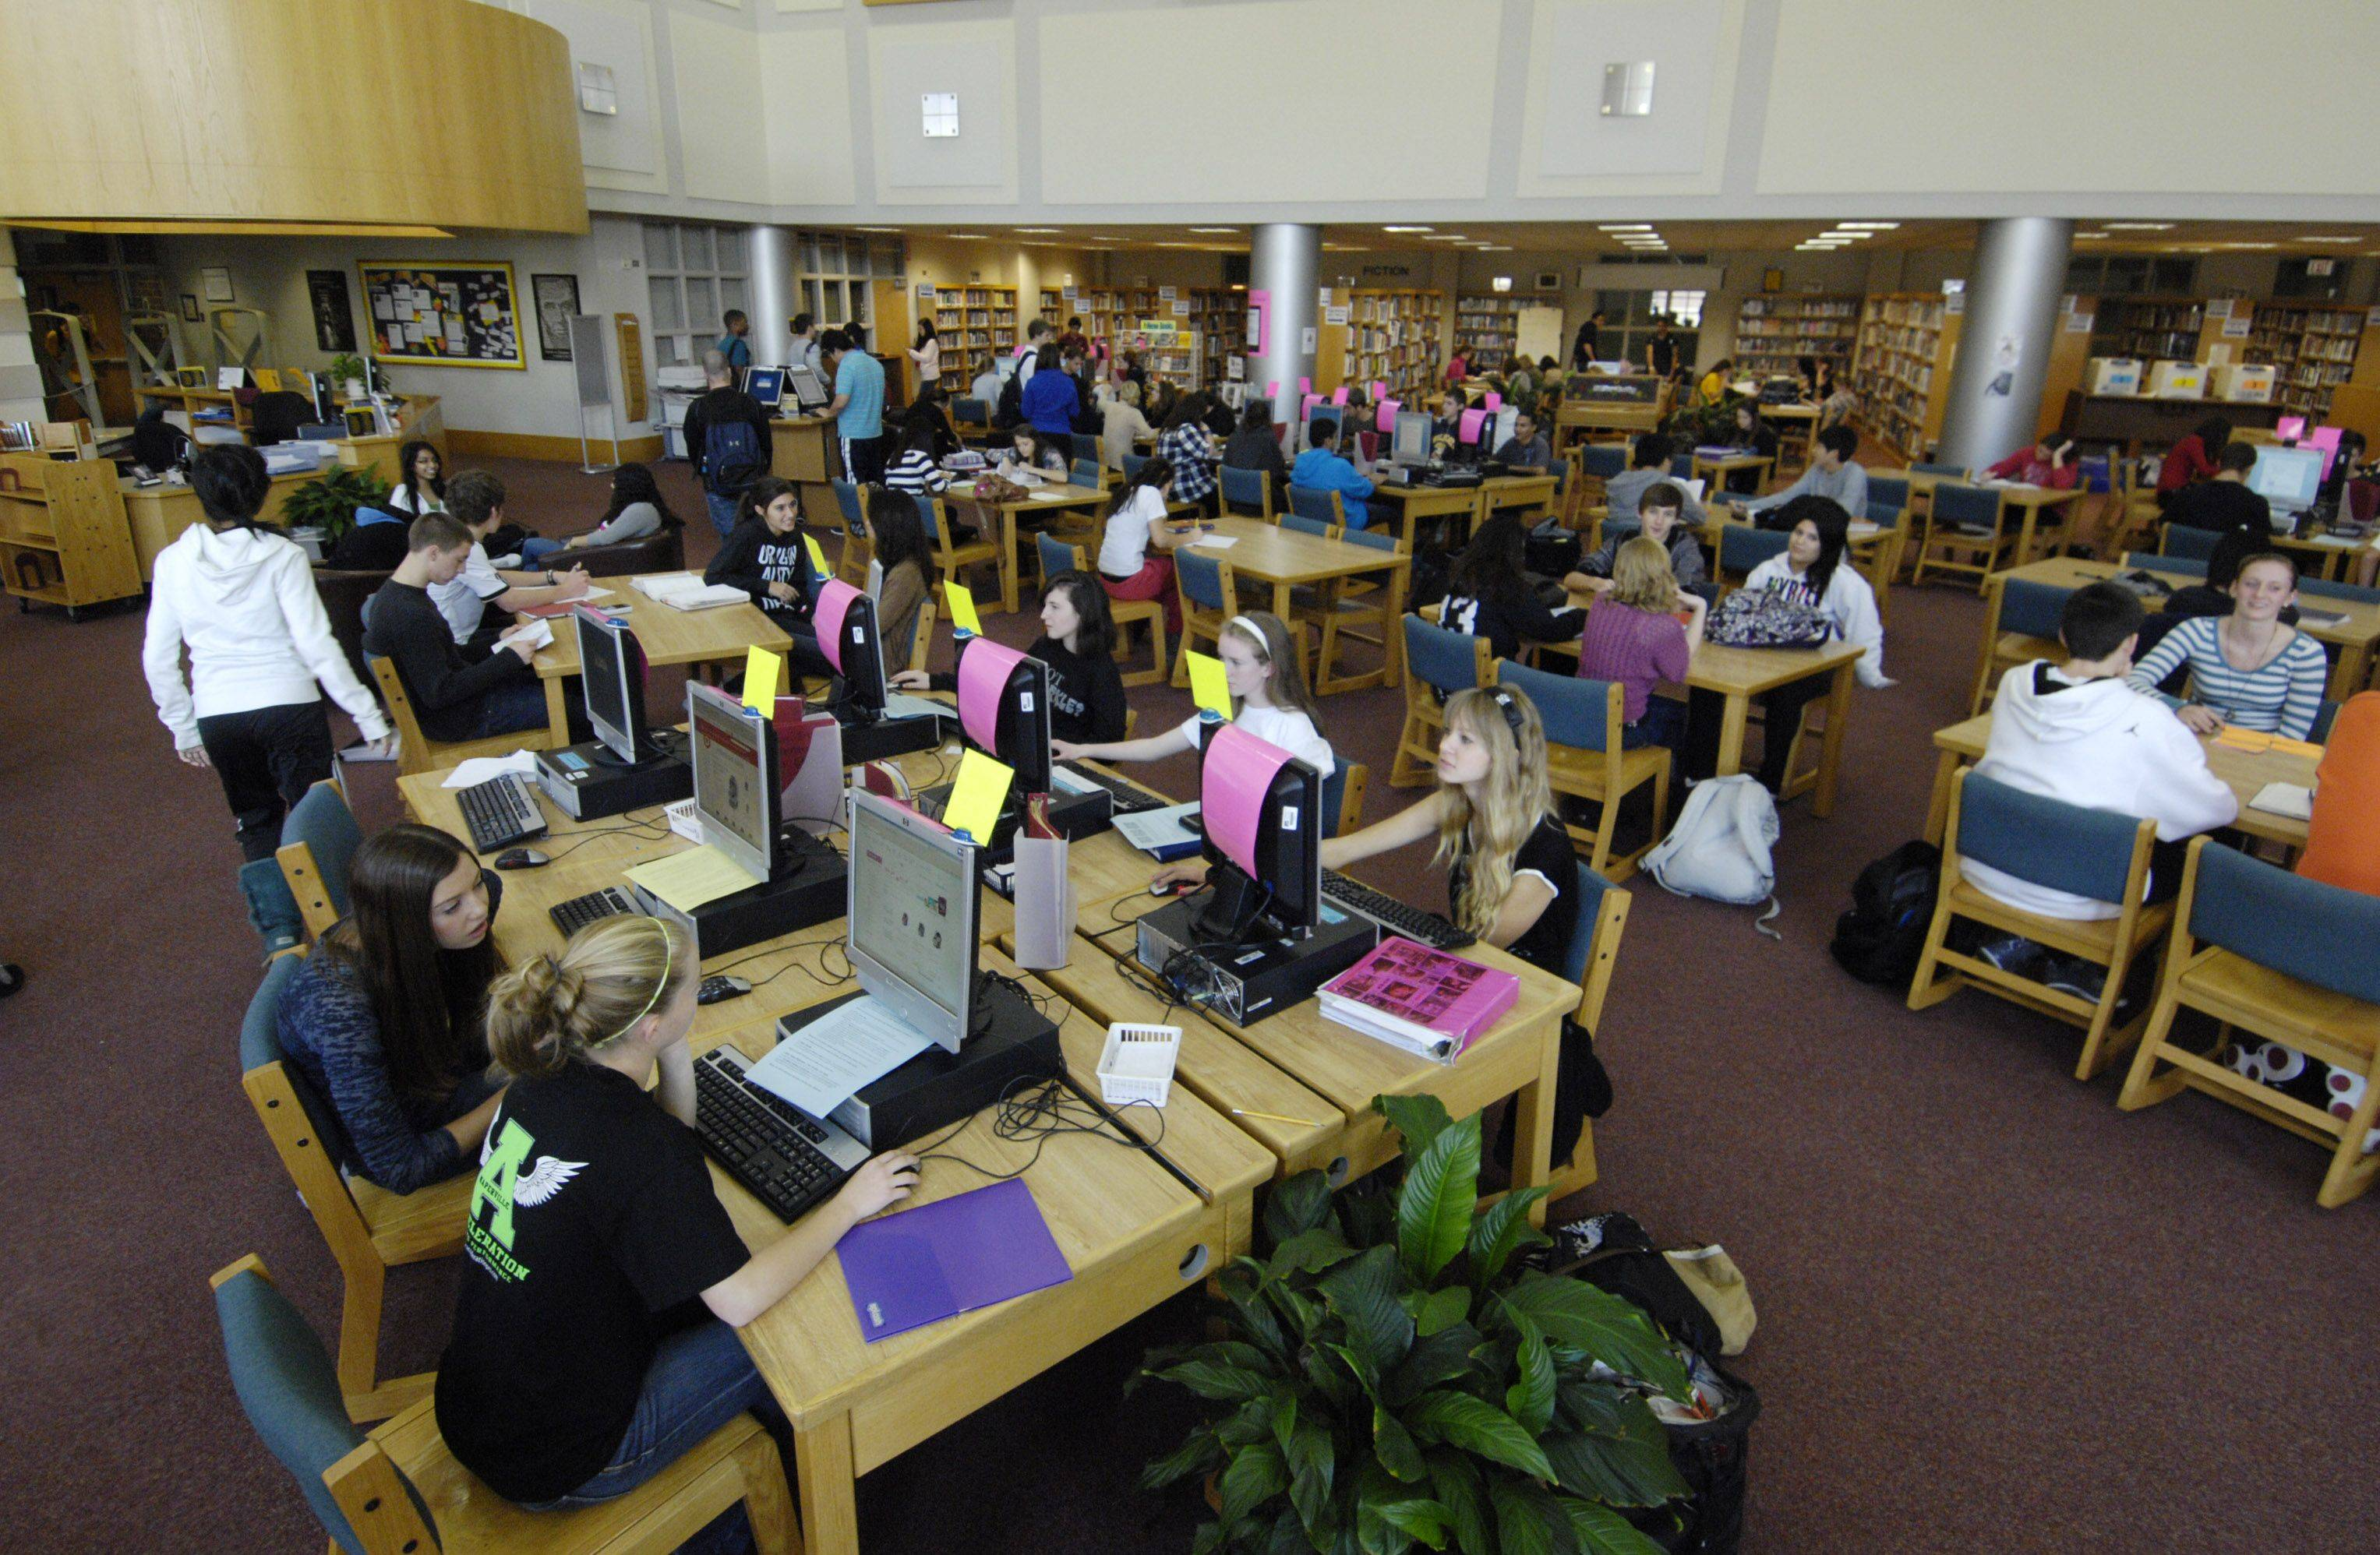 Neuqua Valley High School, one of the state's most successful on test performance, has less class time than many of the suburbs' lower-ranked schools. During an option period, the library is filled with students. They also can go to resource rooms or the cafeteria during that period.